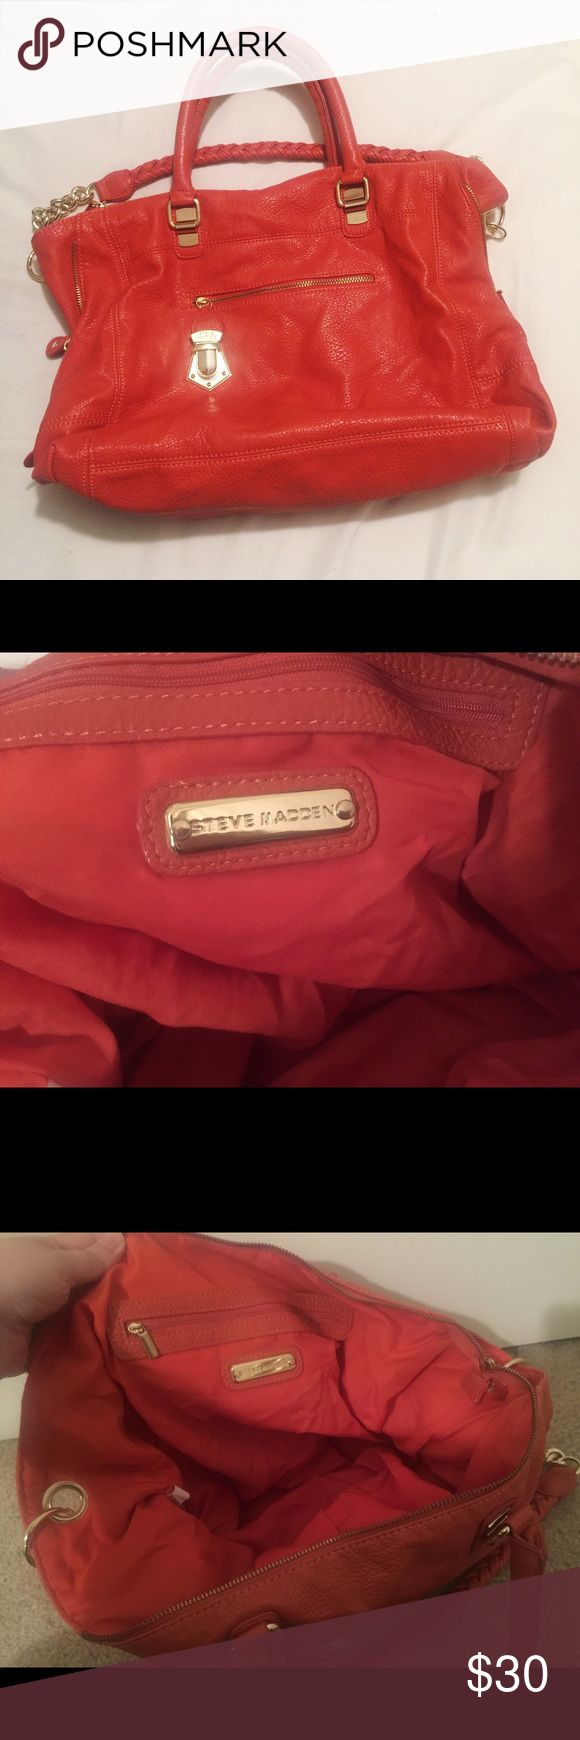 Steve Madden Purse, excellent condition Beautiful Steve Madden purse in excellent condition. Could pass as new. Inside is clean and so is outside. No stains or flaws. The color of the bag is more of a burnt orange color. Steve Madden Bags